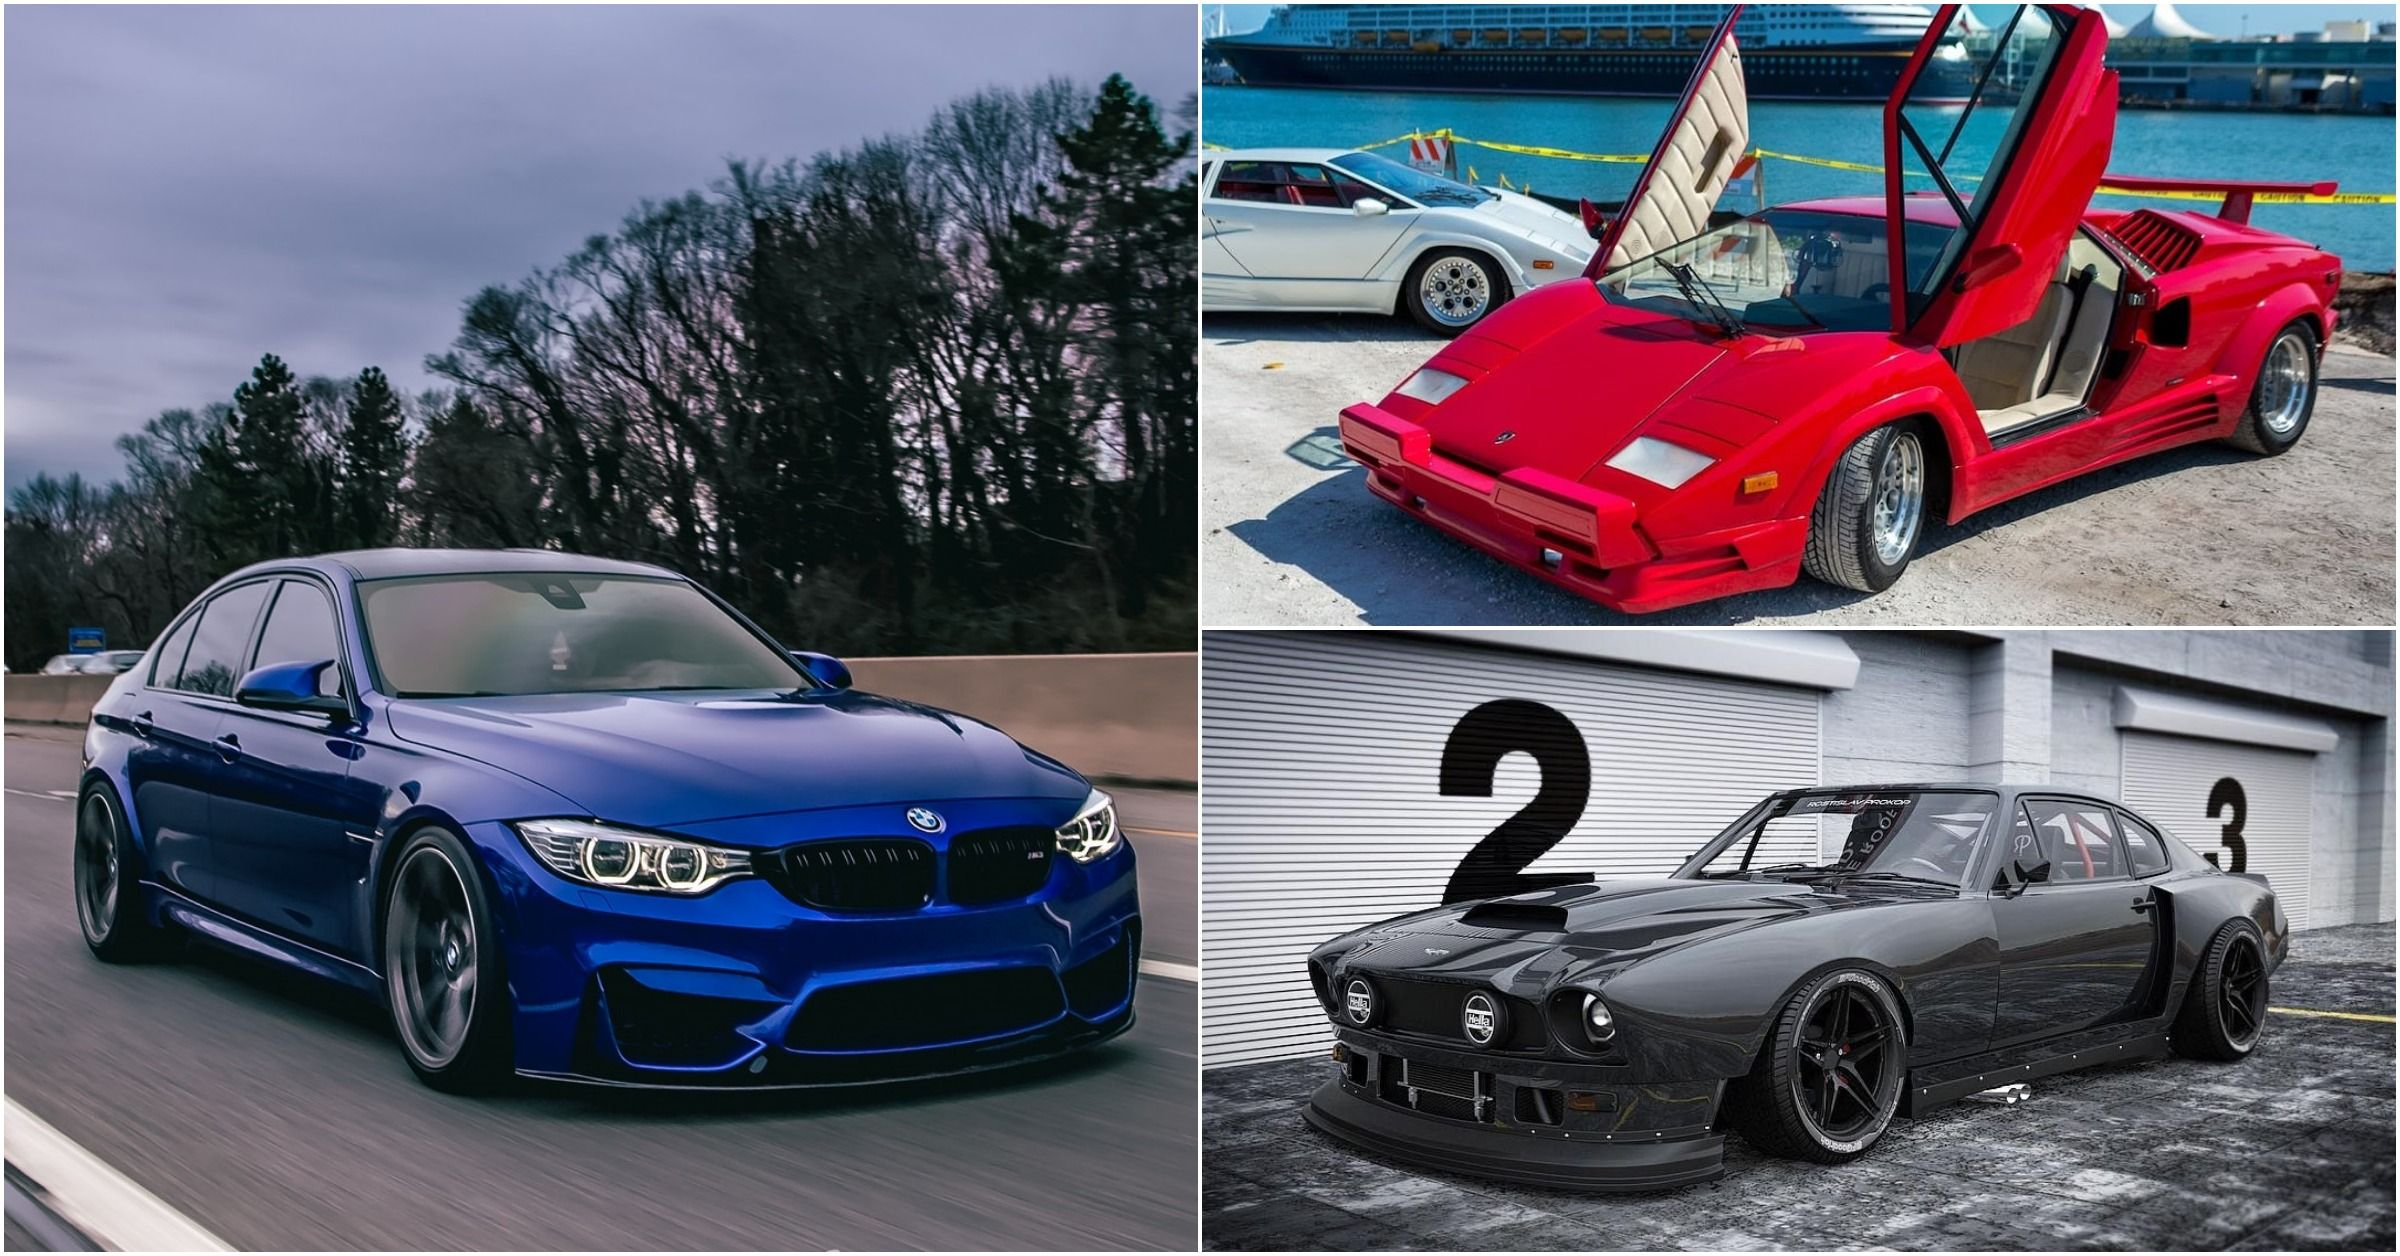 10 Of The Toughest European Sports Cars 5 That Will Crumble